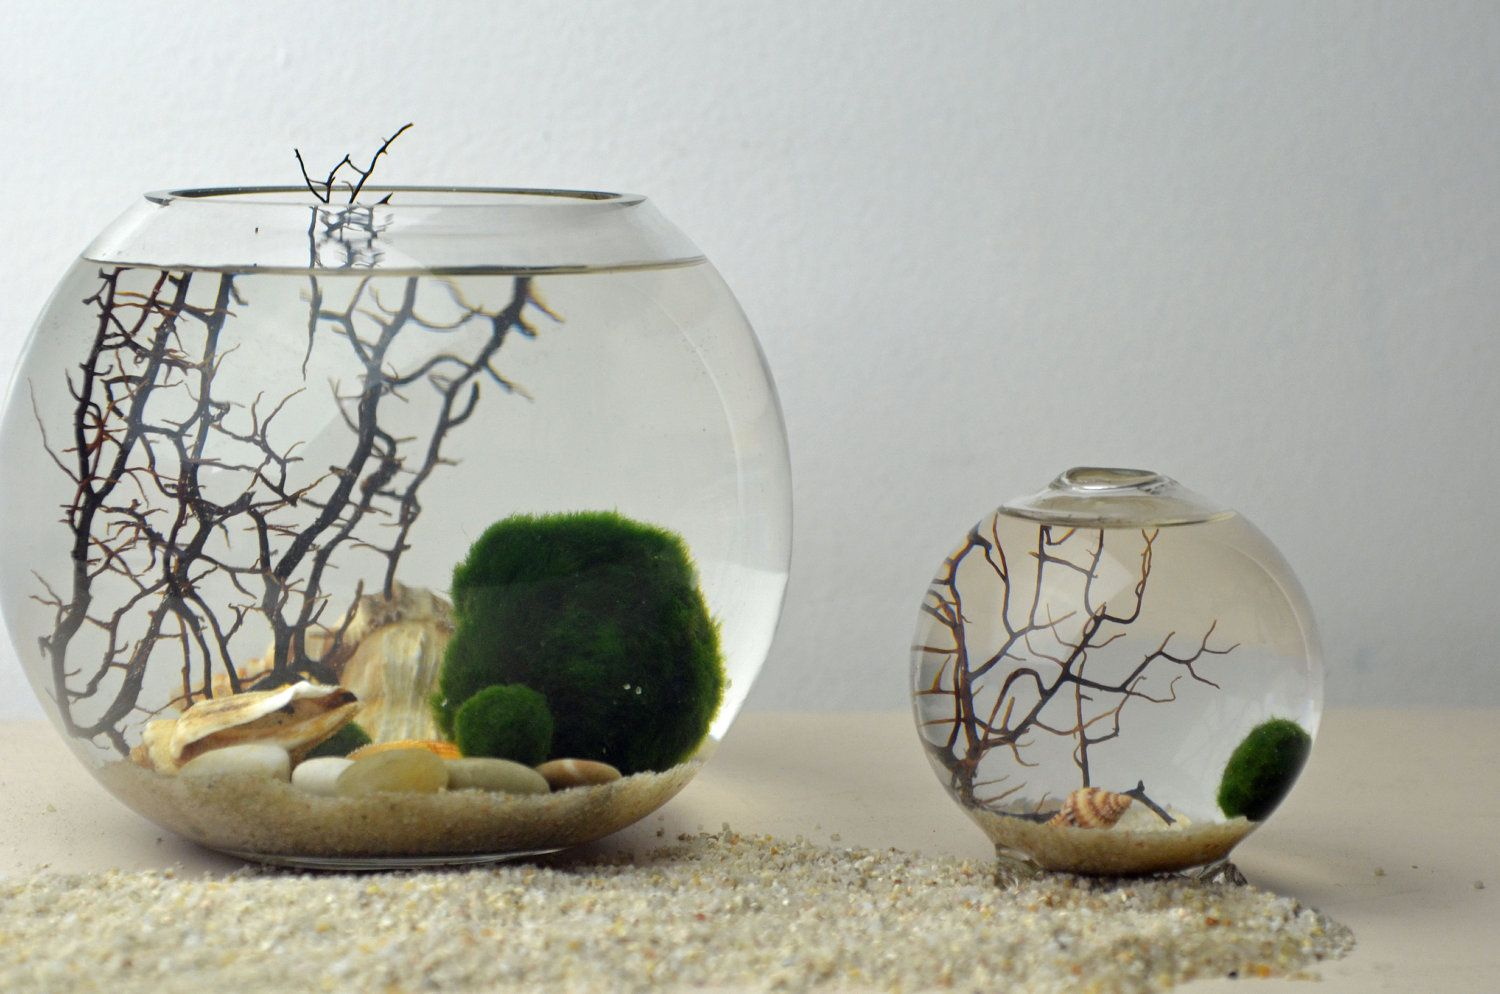 Marimo Japanese Moss Ball Aquariums Beautiful Though My Chances